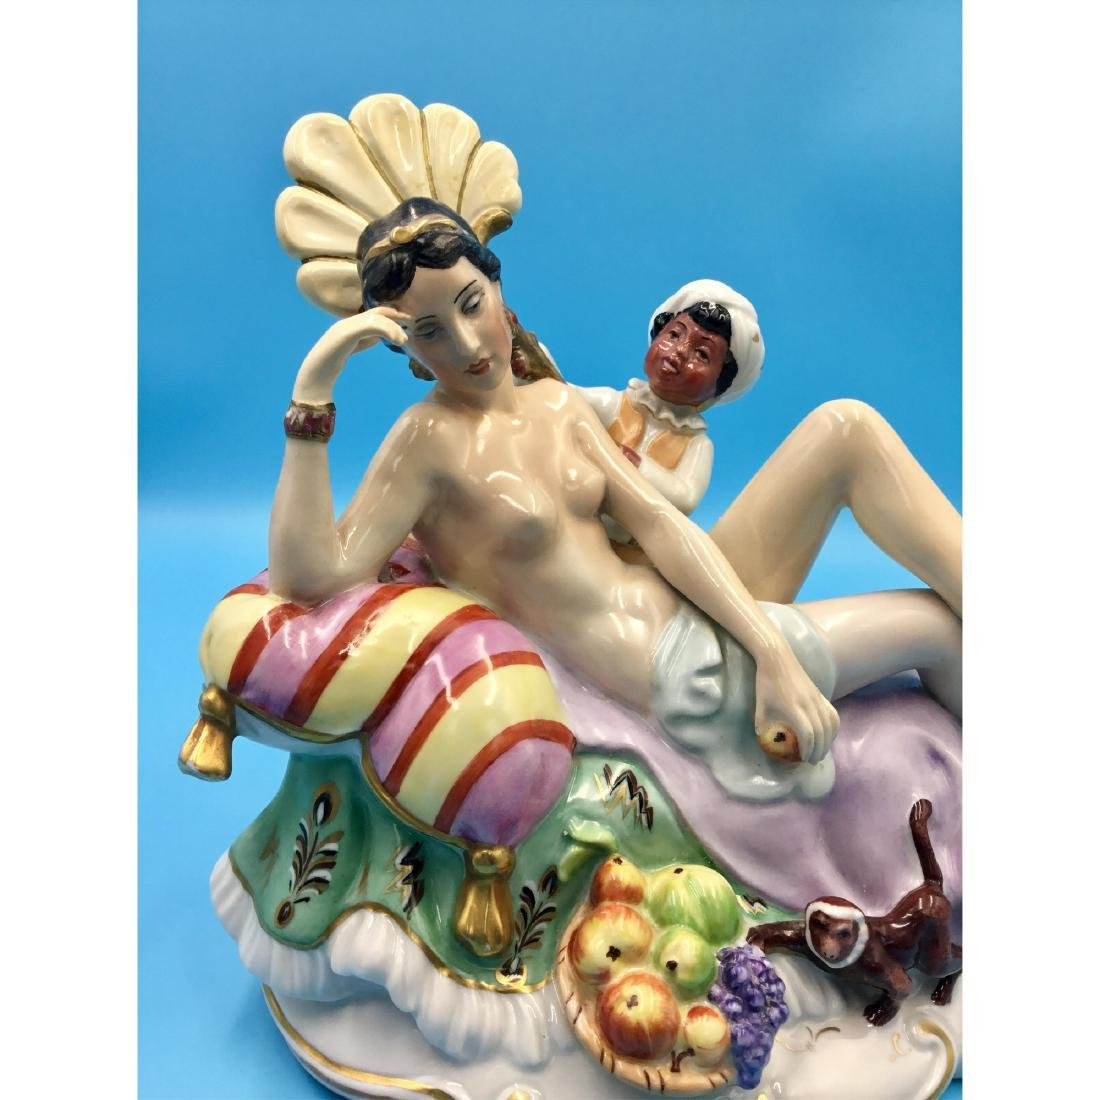 LARGE PORCELAIN GROUP FIGURINE NUDE WITH BLACKMOOR - 5